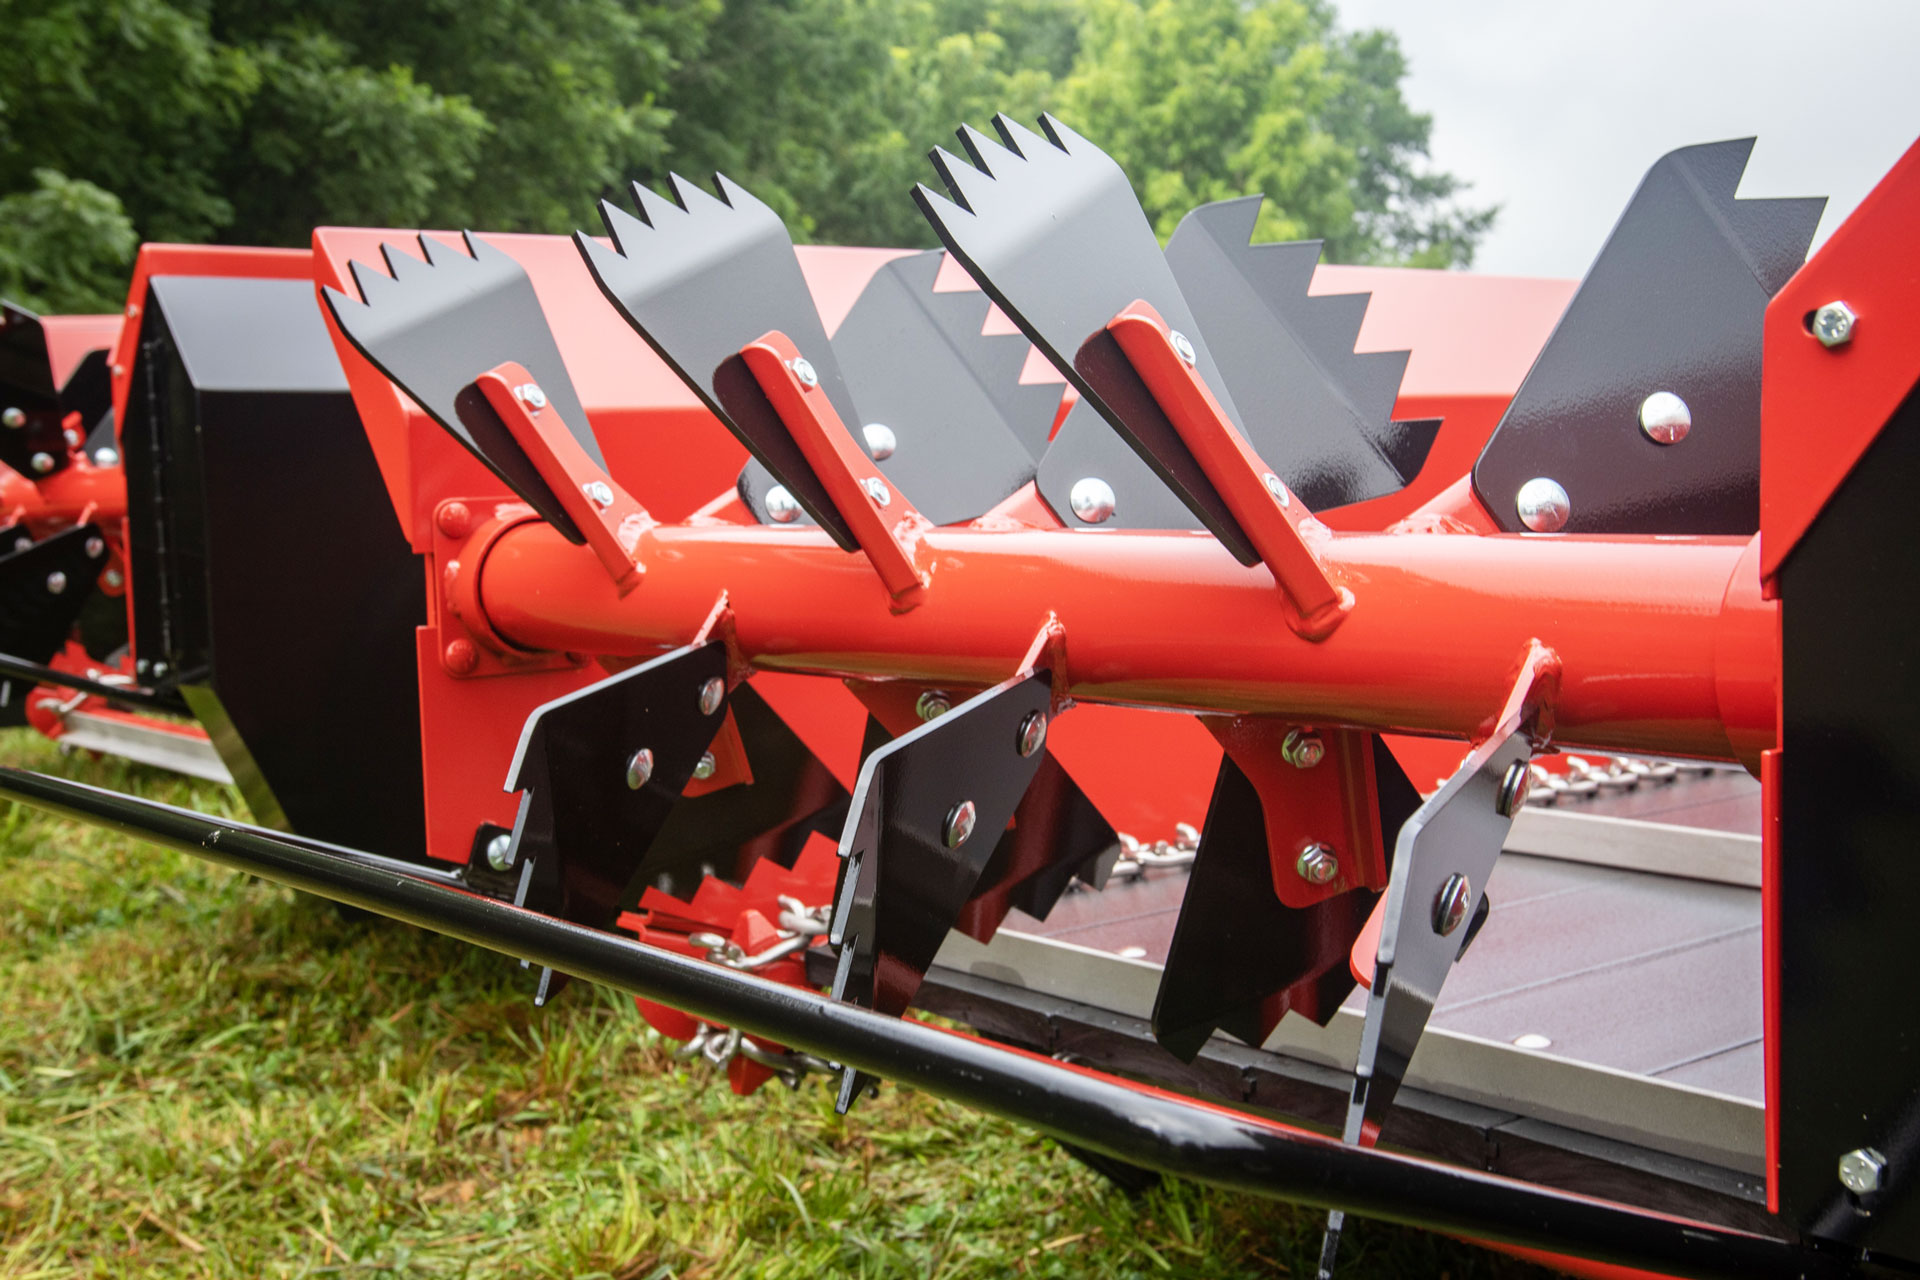 PTO manure spreader by conestoga manure spreaders with 12 rooster comb paddles.